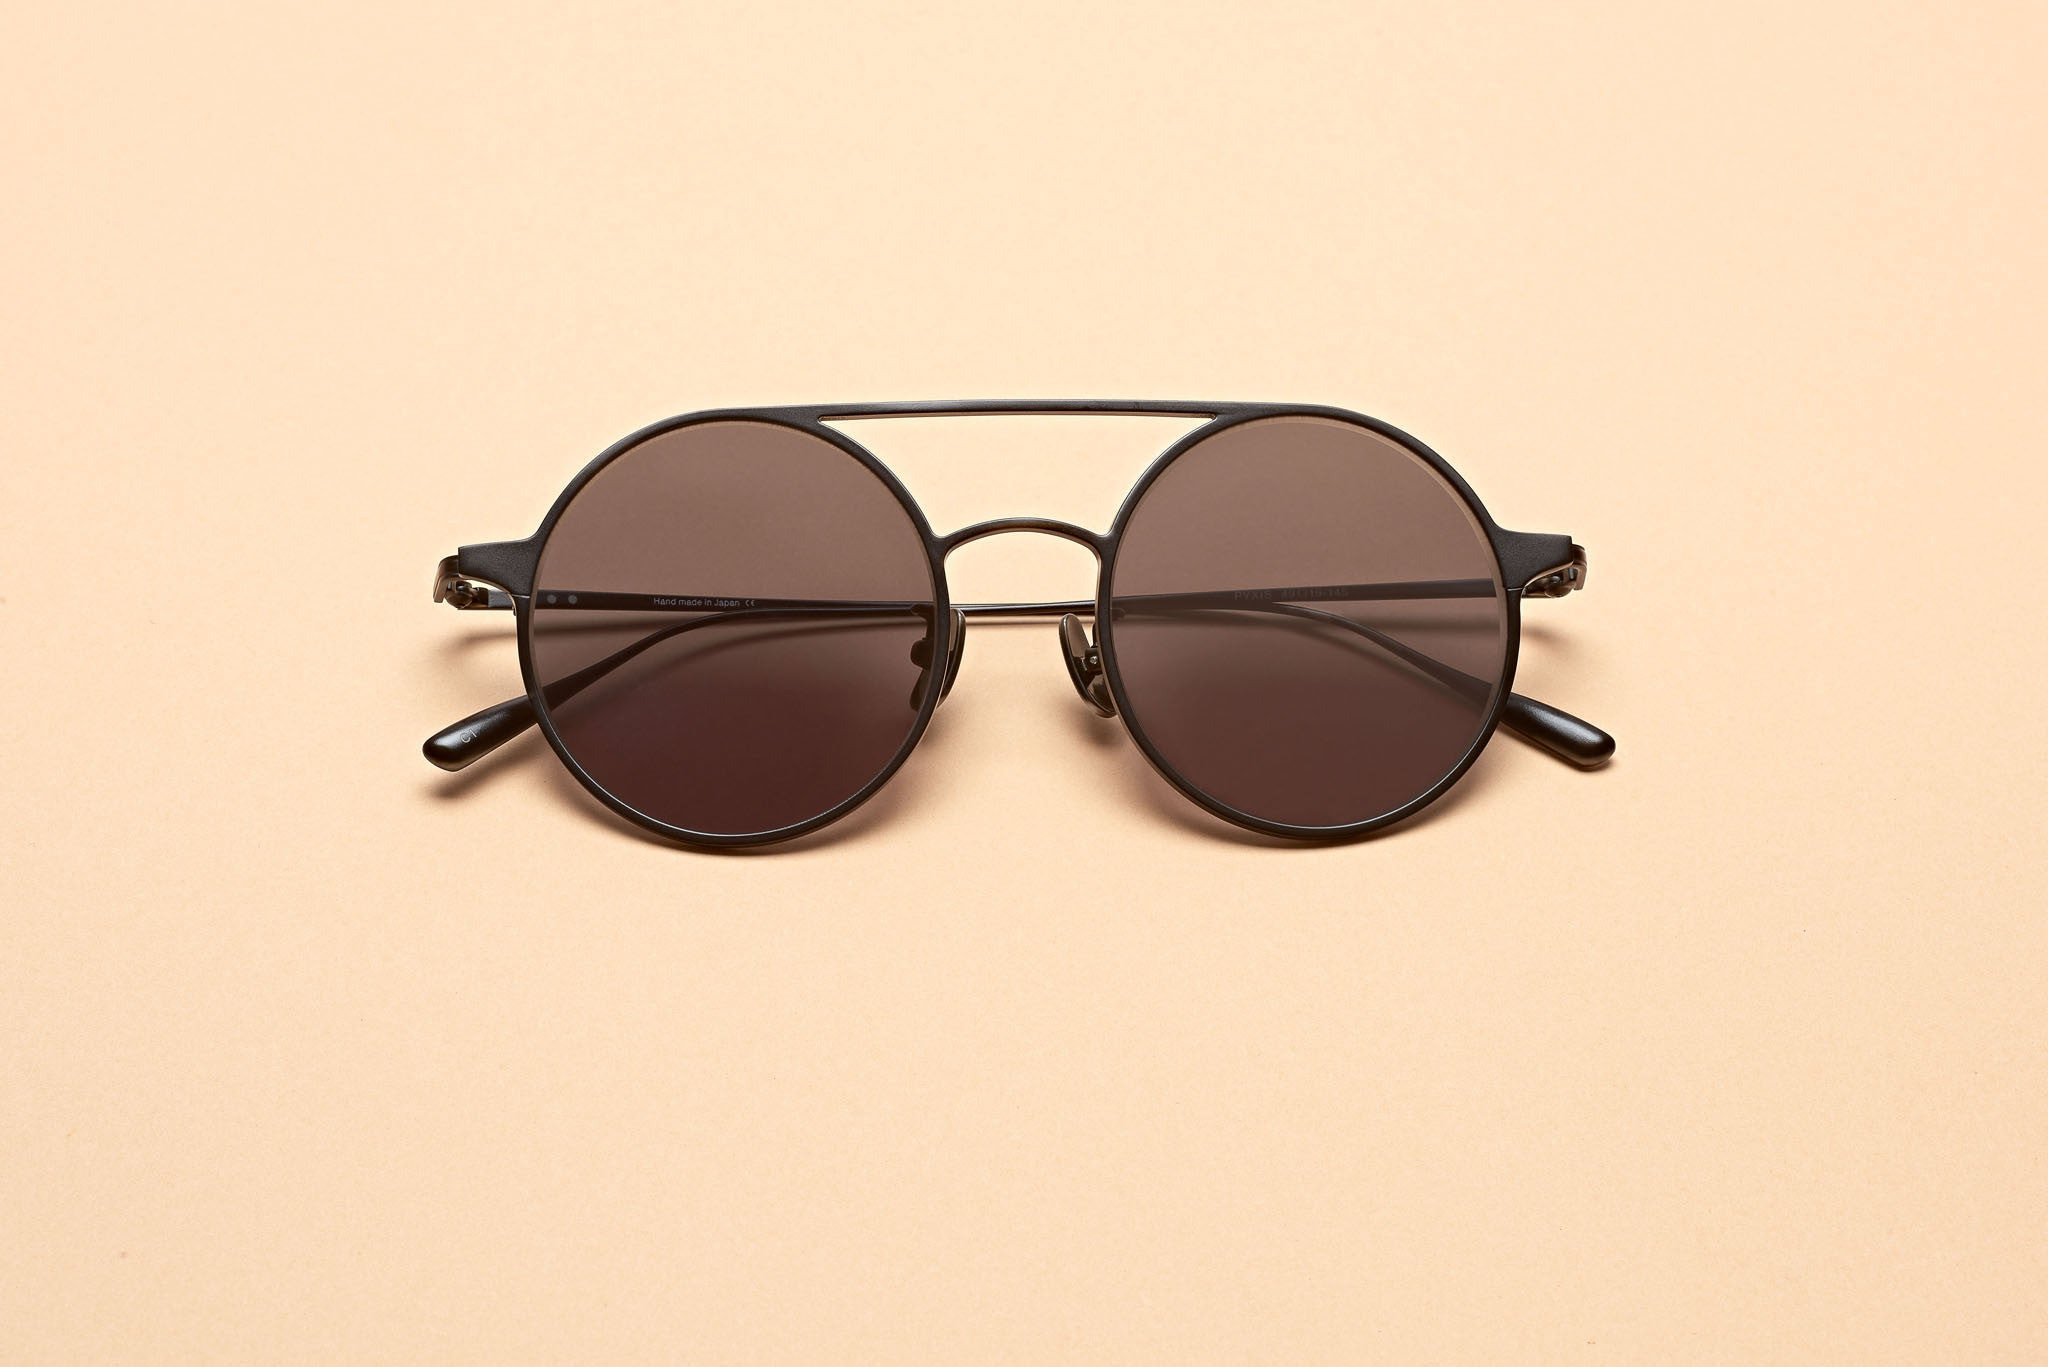 Pyxis Black Sunglasses Australia